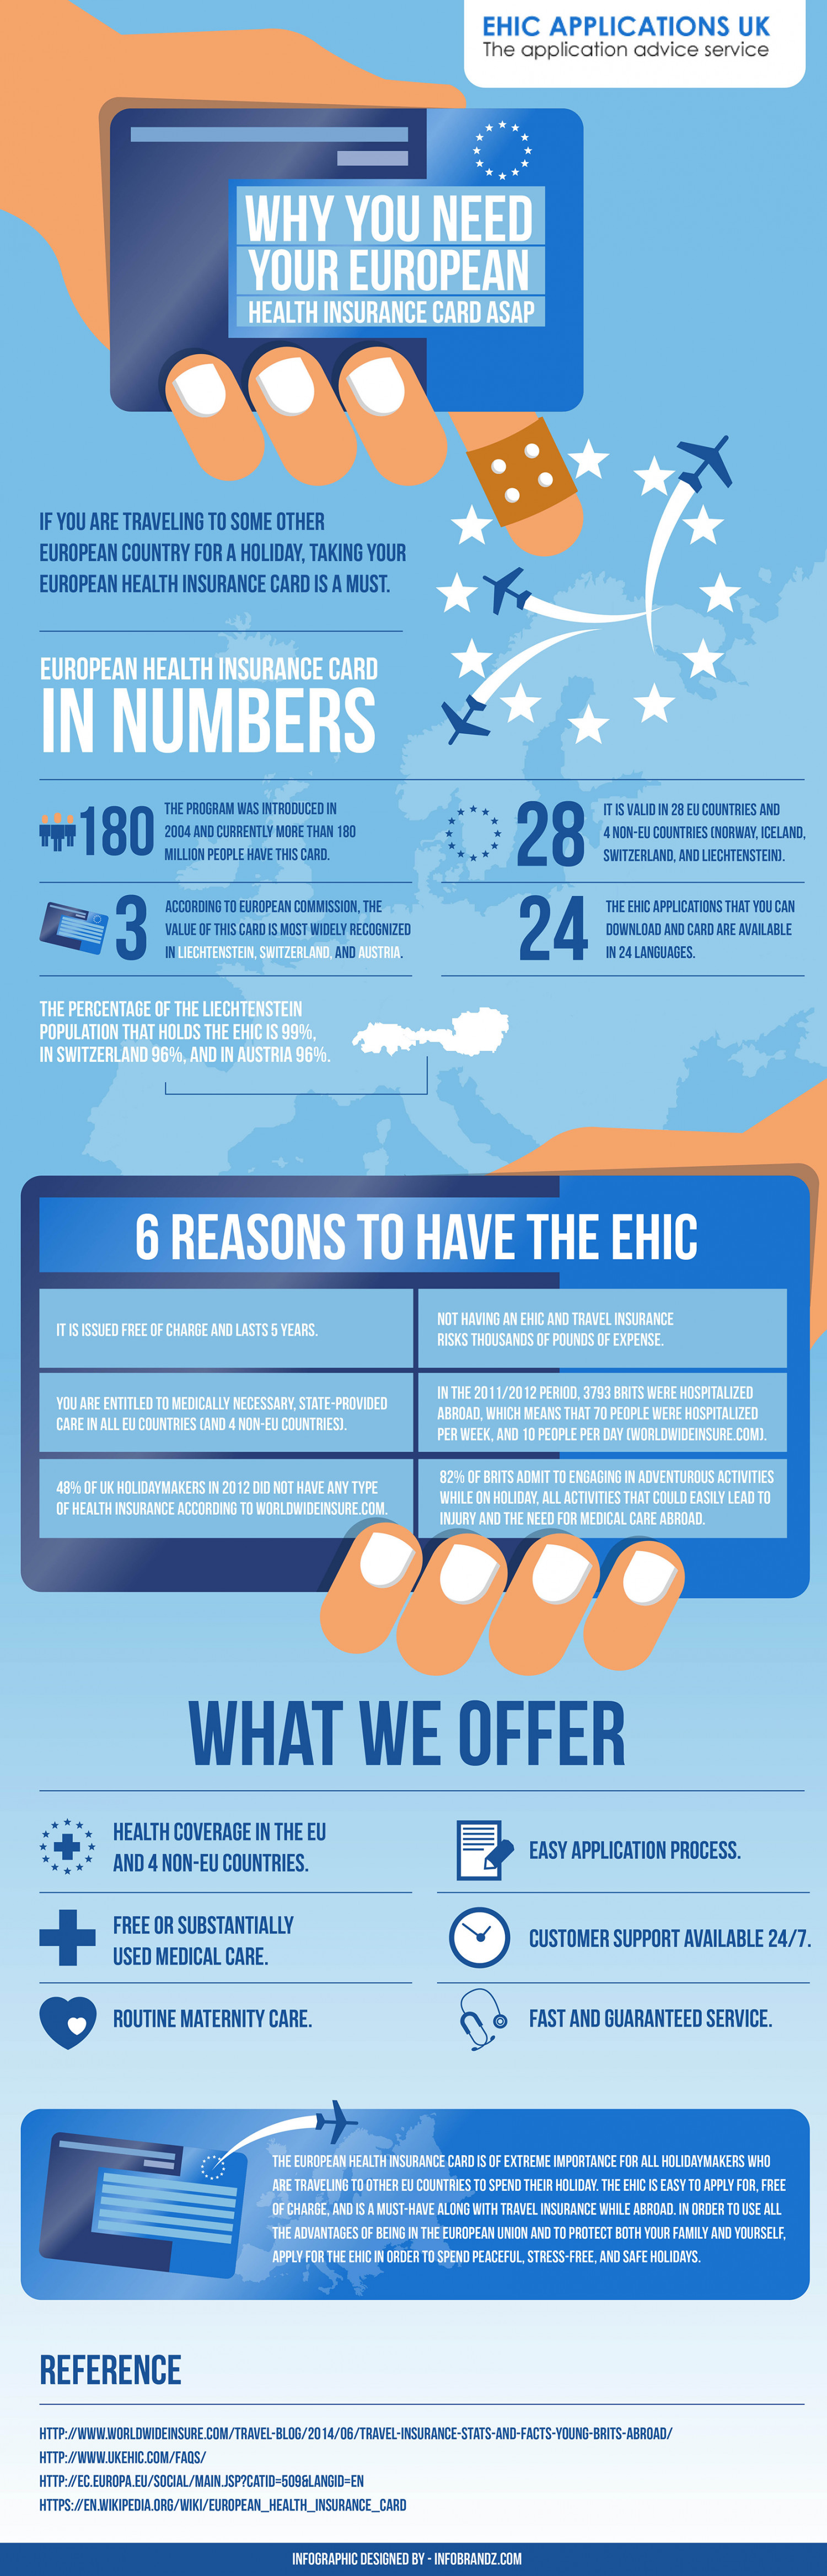 Why You Need Your European Health Insurance Card ASAP Infographic